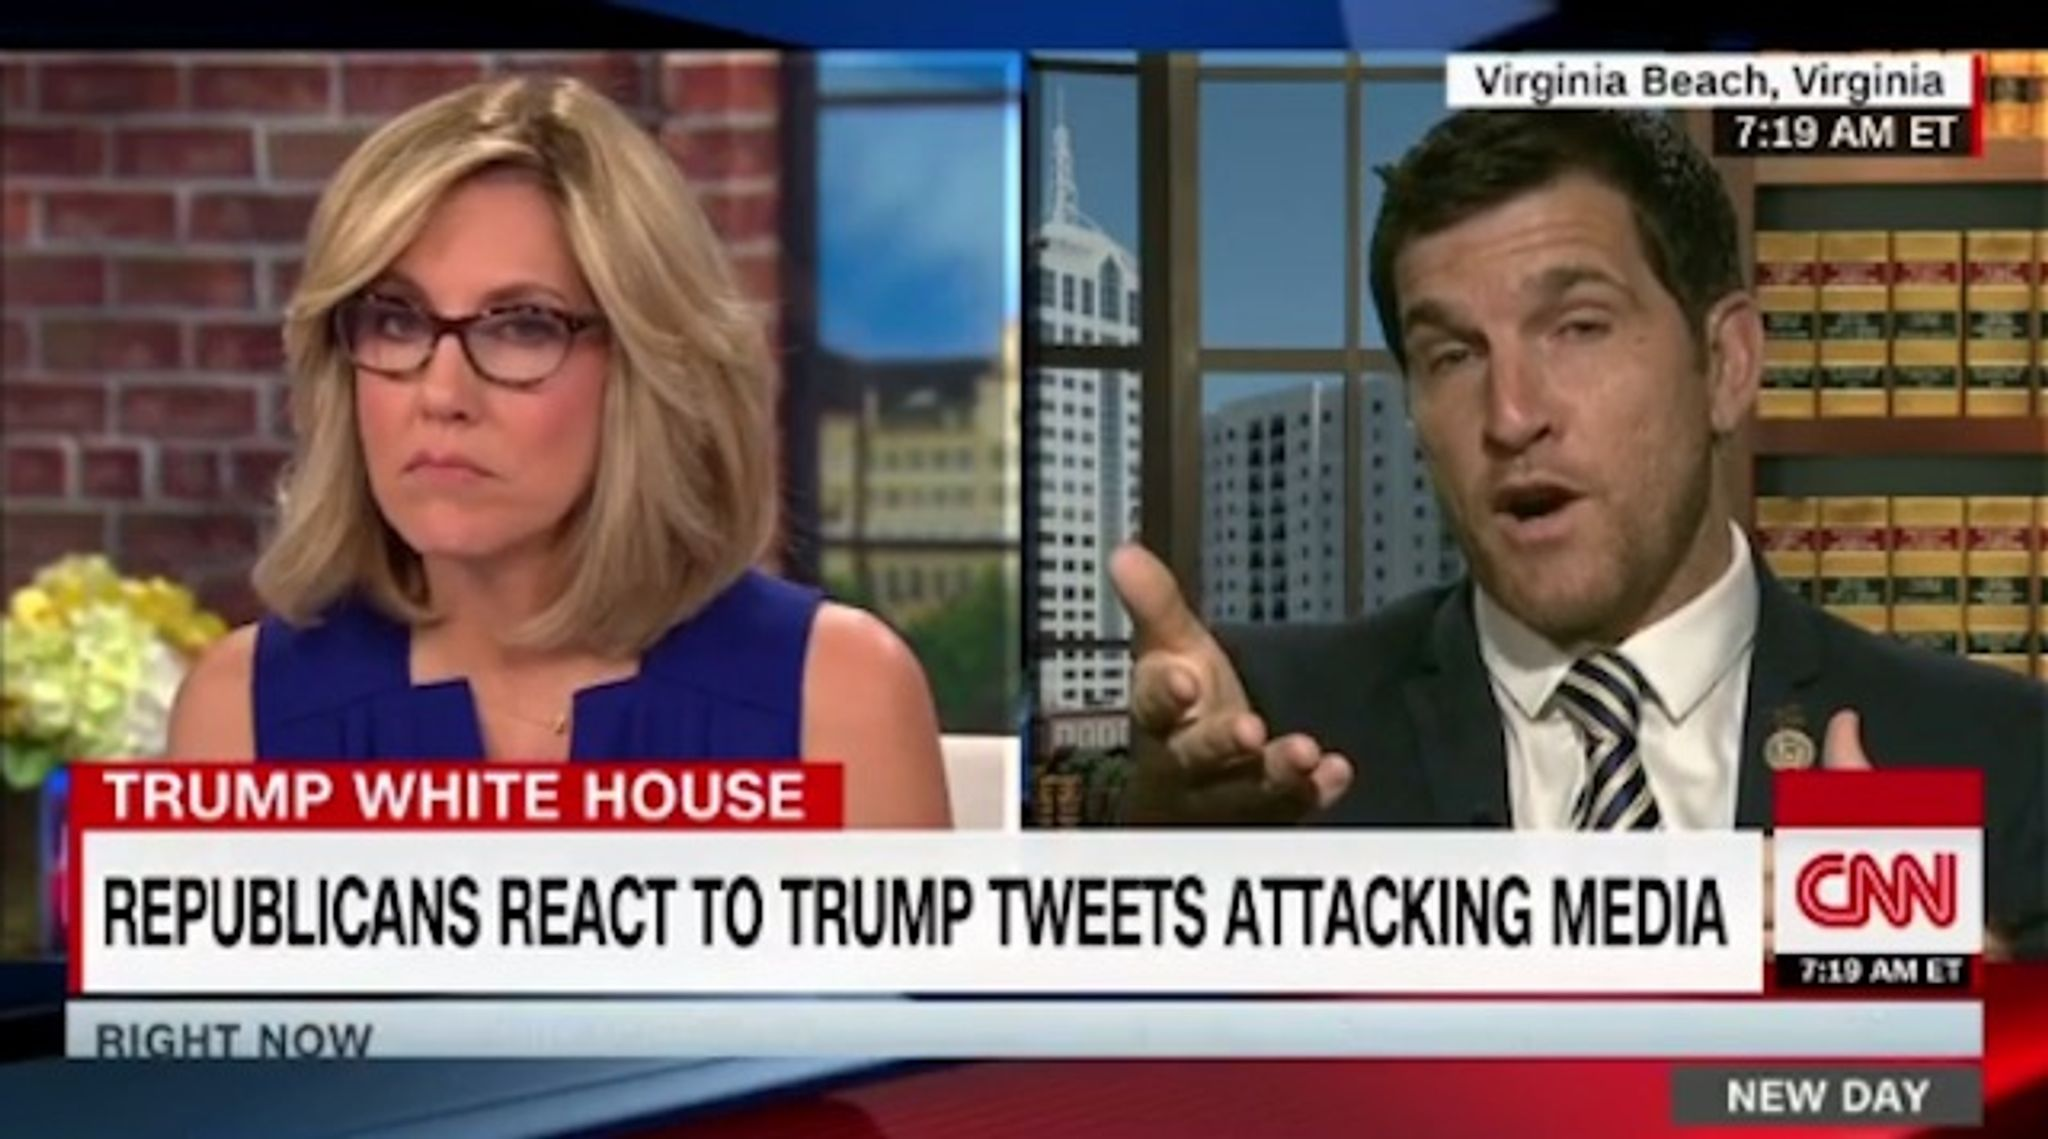 3D hentai imperia premiumhentai gif alisyn camerota fox Scott Taylor, GOP rep, to CNN: 'You play right